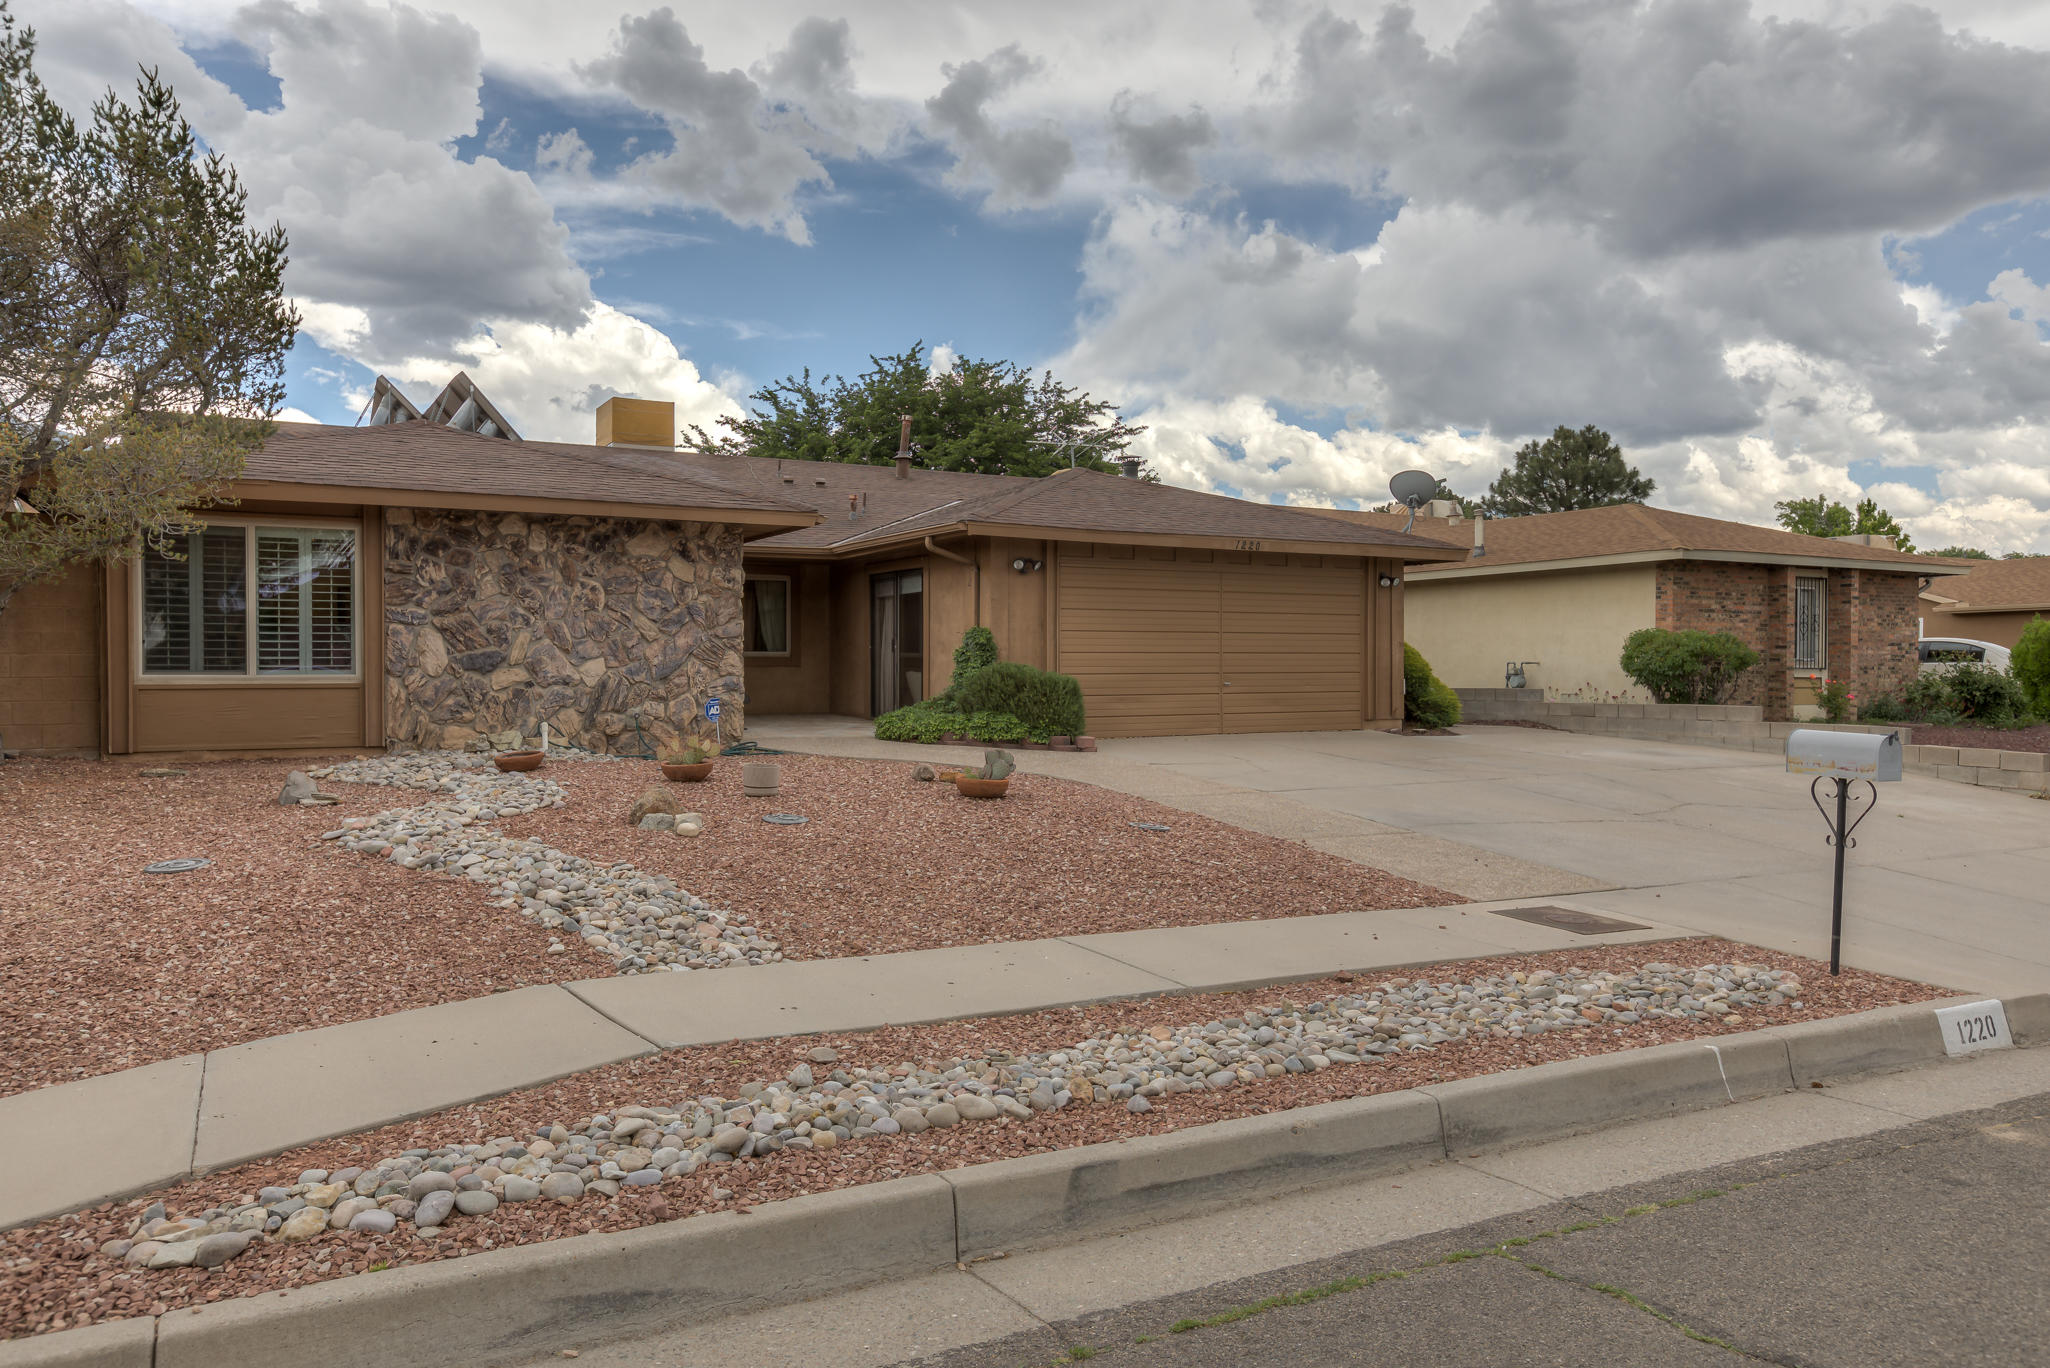 Entertainers Delight ! This well cared for single story home is located in a desirable Northeast heights neighborhood. The tastefully updated kitchen includes newer cabinets,tile flooring,extended pantry, track lighting and granite countertops with a eat in bar that opens to the den.The den has a pellet stove insert, plantation shutters and view of the pool recreation area. The good sized master bedroom has a bath that was remodeled a few years ago. There are private living spaces for everyone.The roof was replaced in 2020, the pool has been maintained every year. A new filter replaced 2020 and pump was replaced in 2019. Do not let children in the backyard alone as there is a pool ! Seller offering up to $5,000 CC/prepaids with accepted offer & closing.